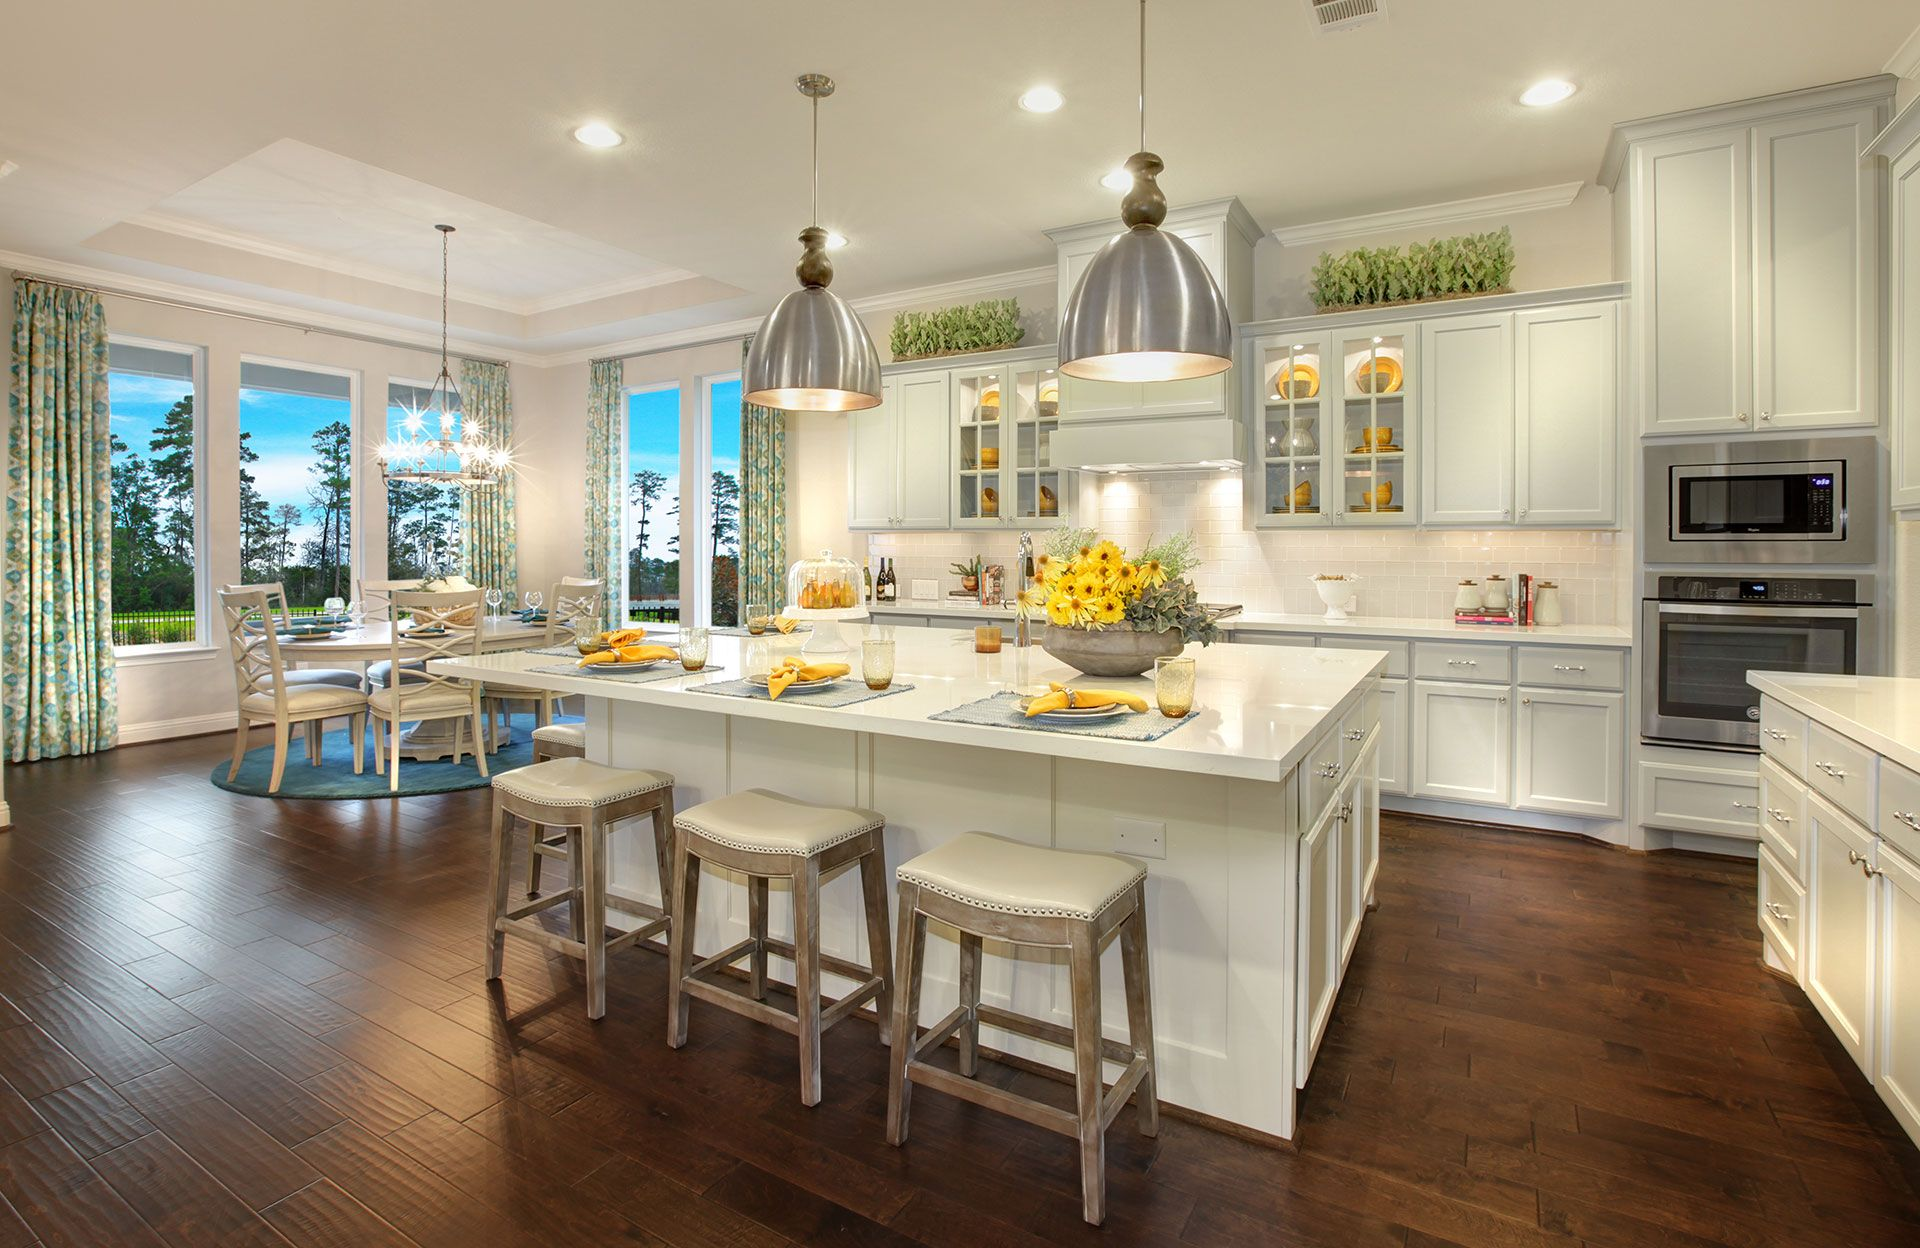 Kitchen featured in the Kentshire By Drees Custom Homes in Houston, TX